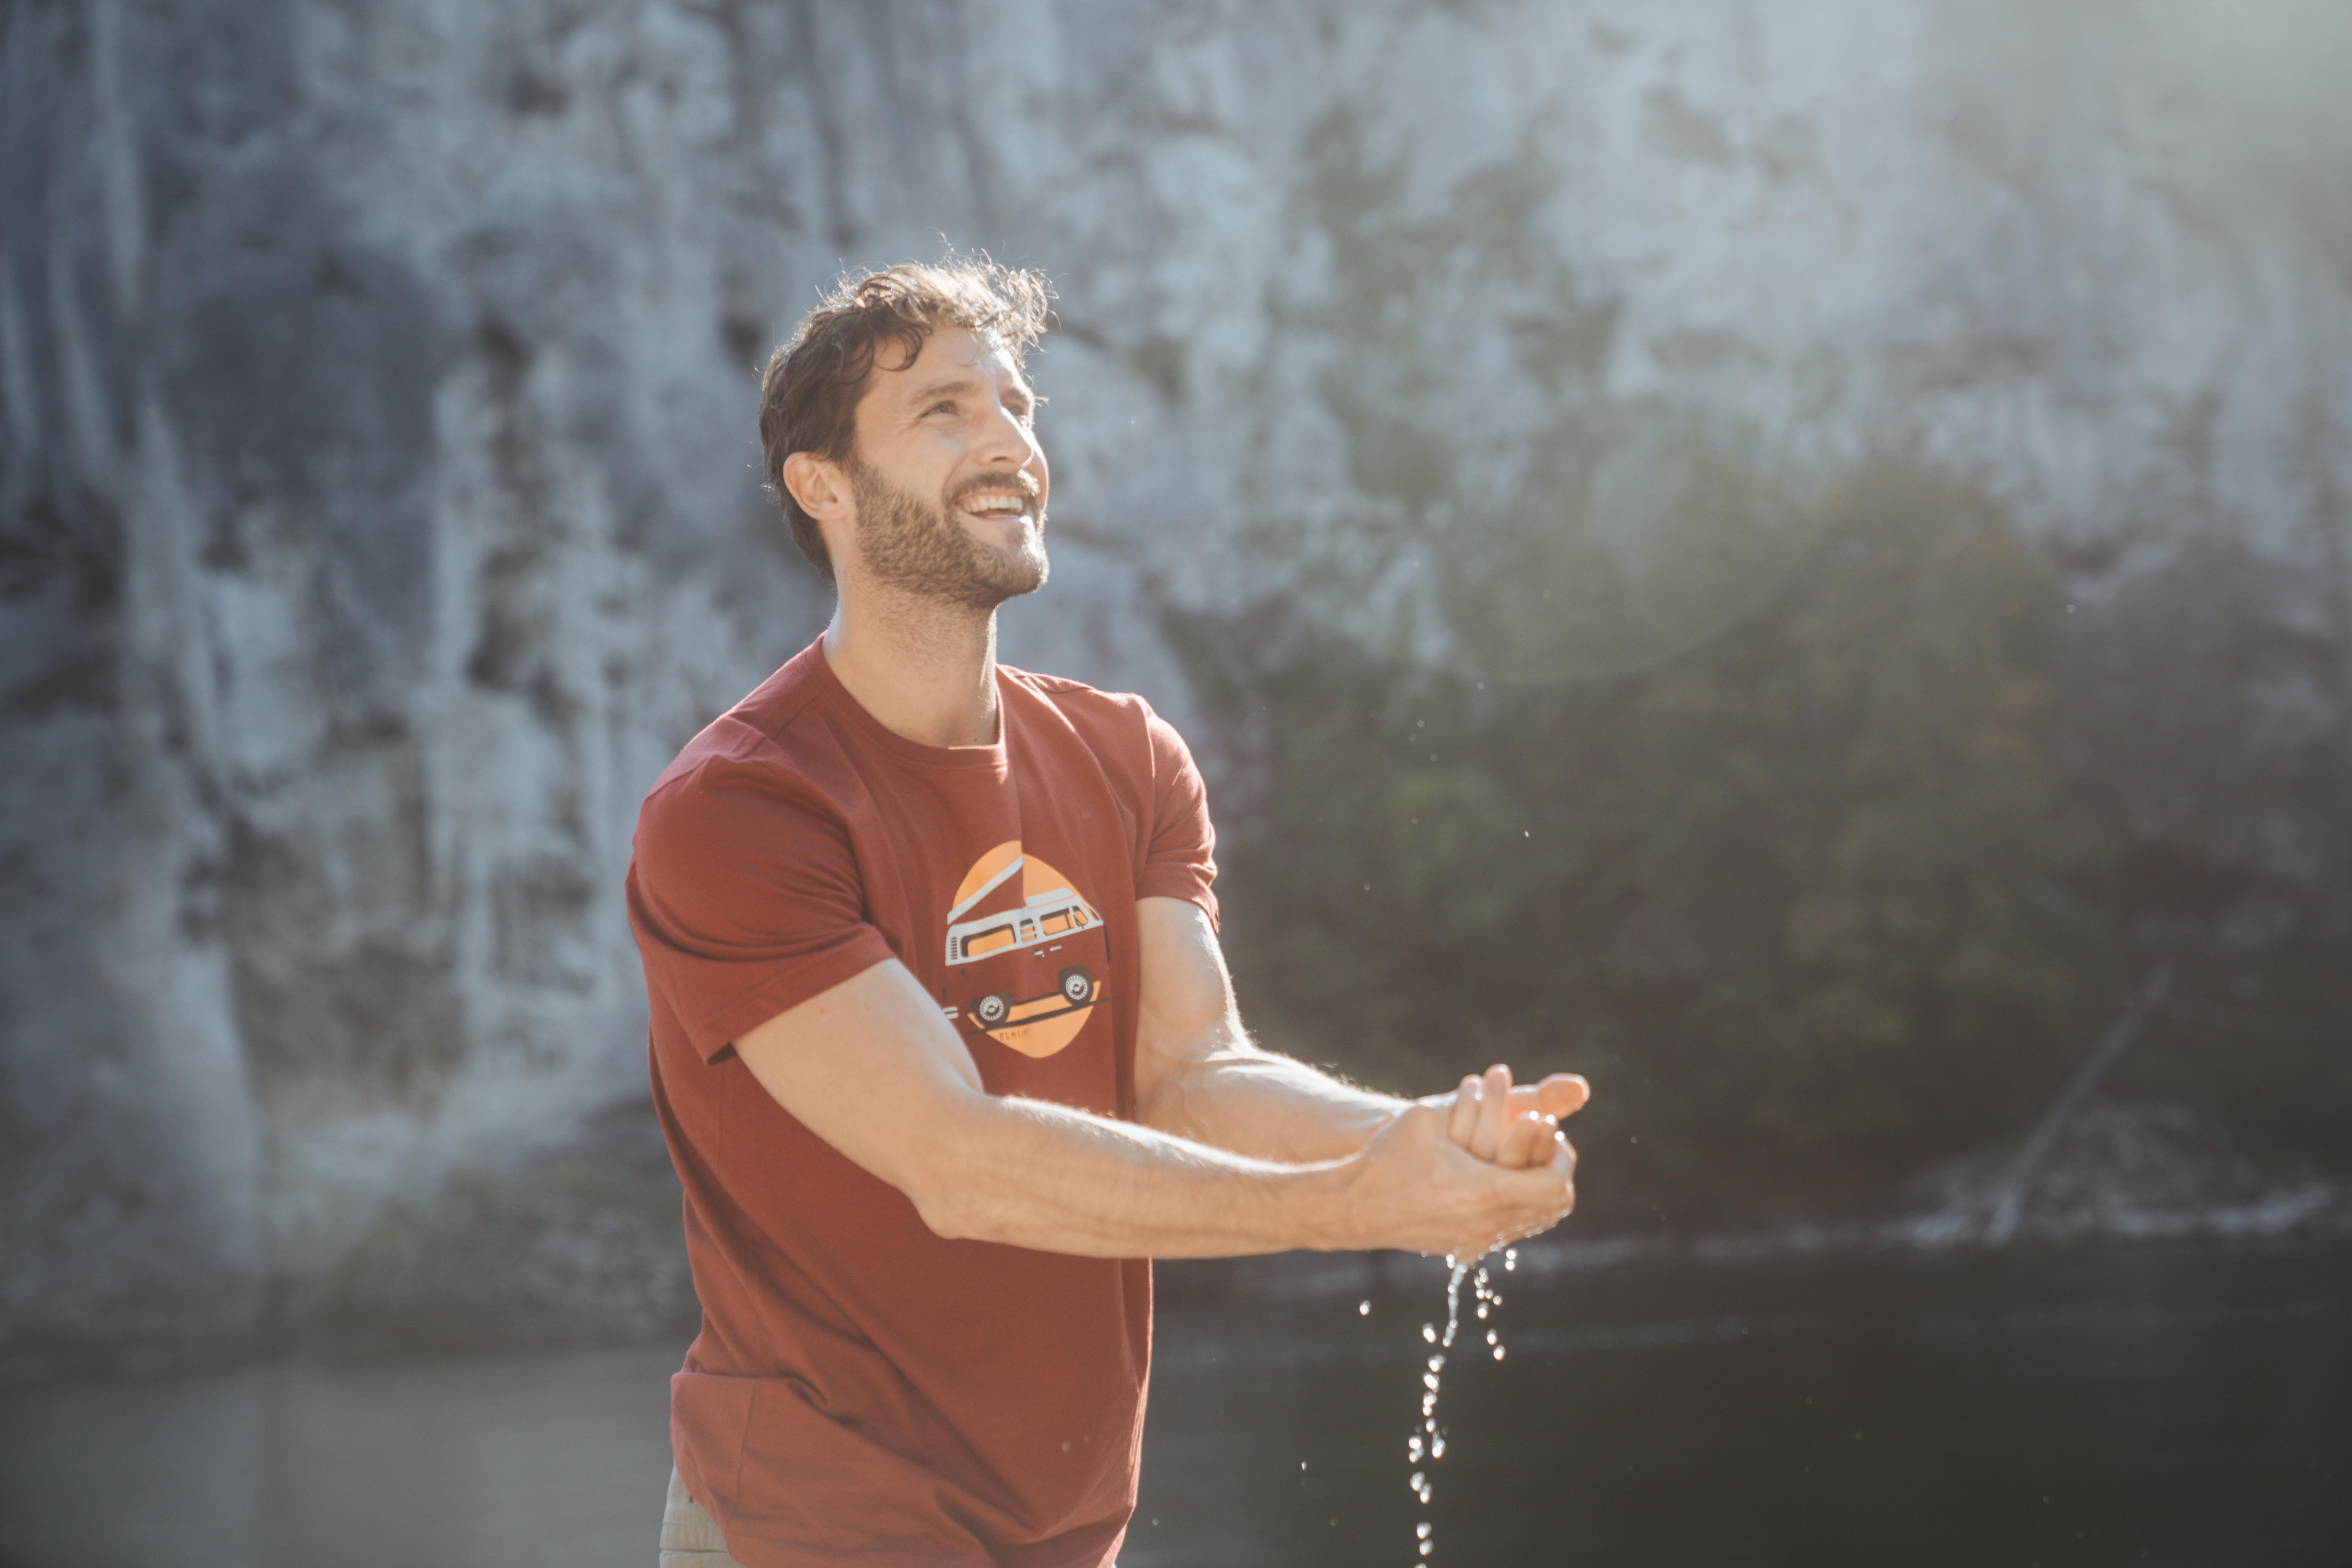 middle aged man with beard wearing red shirt by Elkline standing in sunlight while washing his hands with water